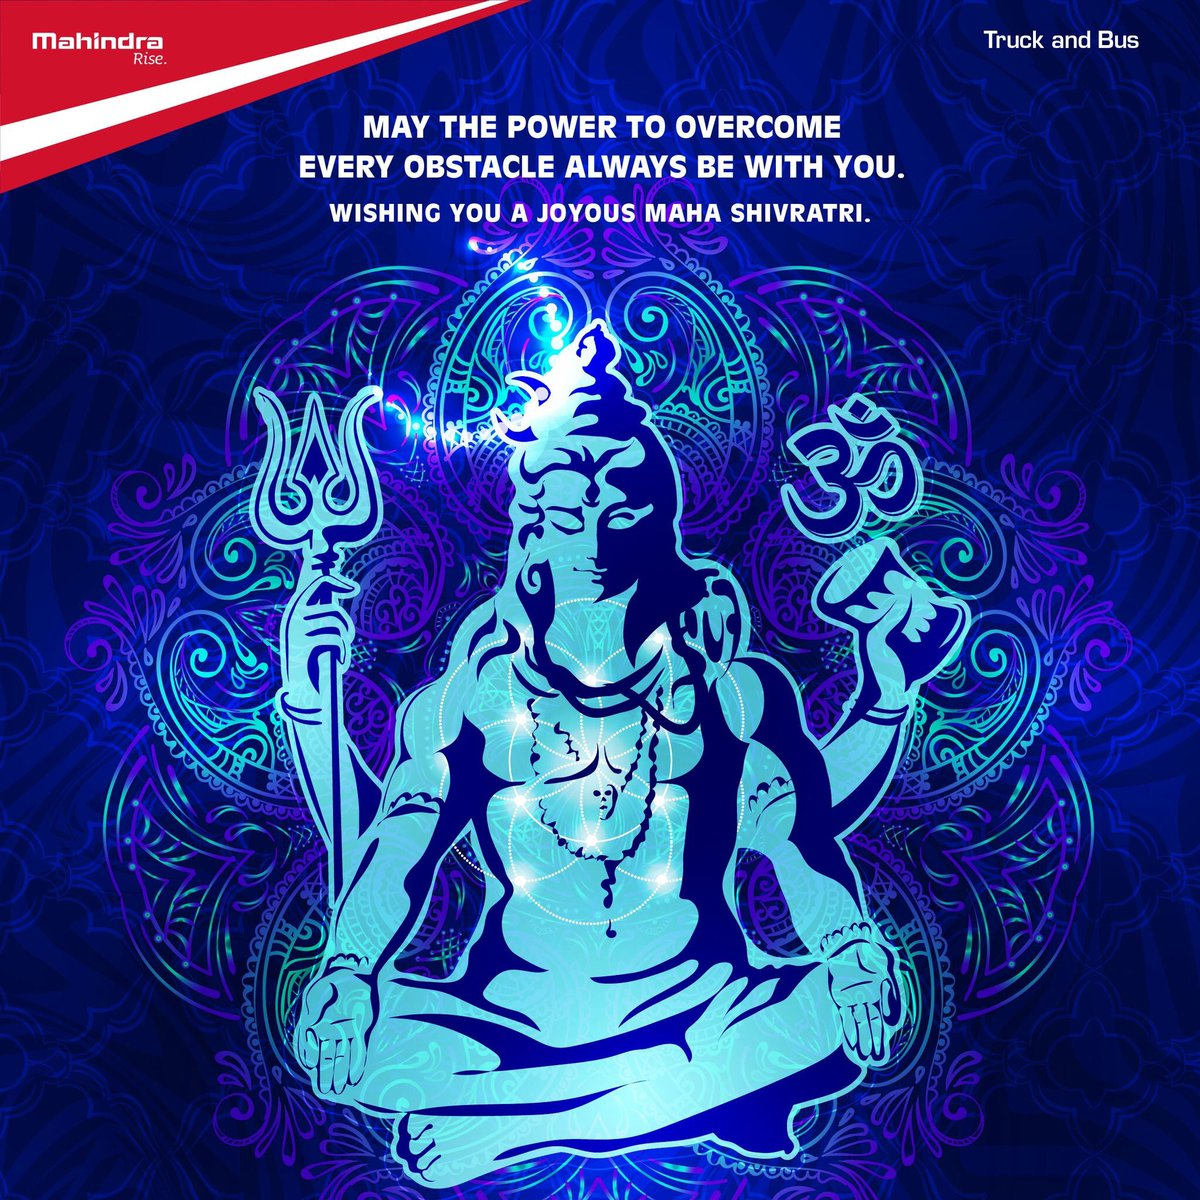 The challenges we need  help overcoming are never external. May we extinguish the darkness & ignorance inside.A joyous Maha Shivratri to all